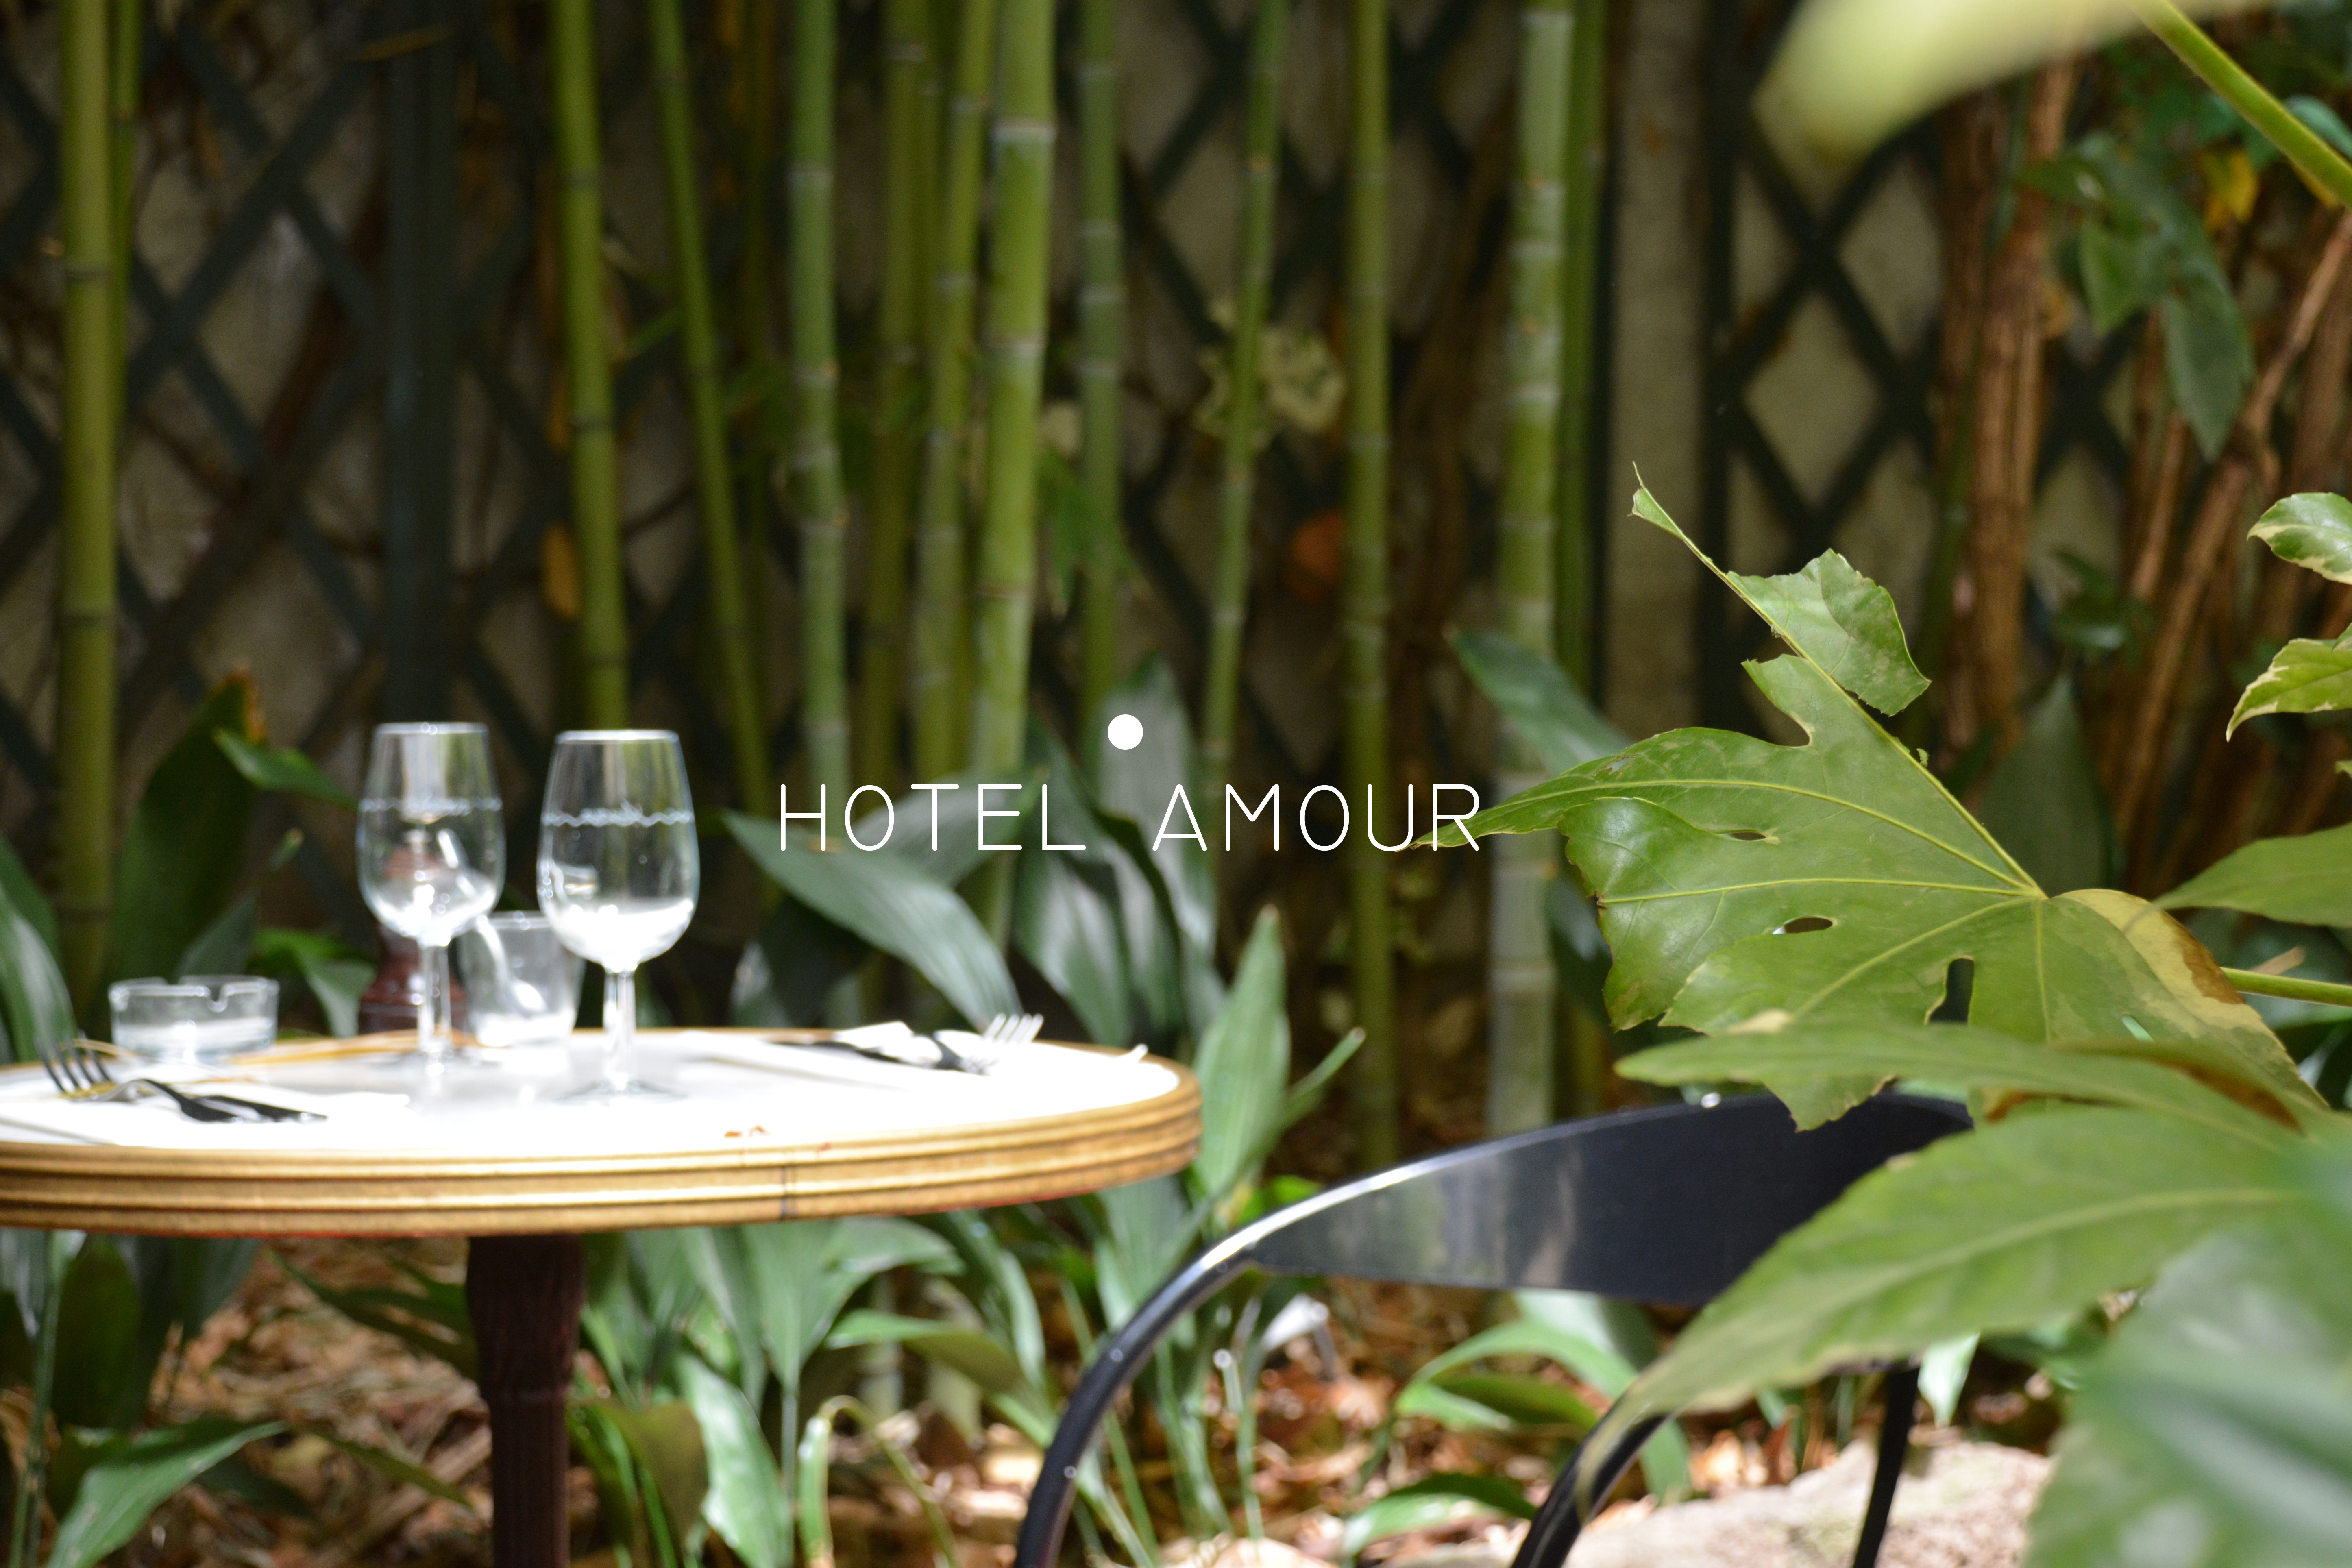 Hotel Amour Un Restaurant A Patio Luxuriantle Polyedre